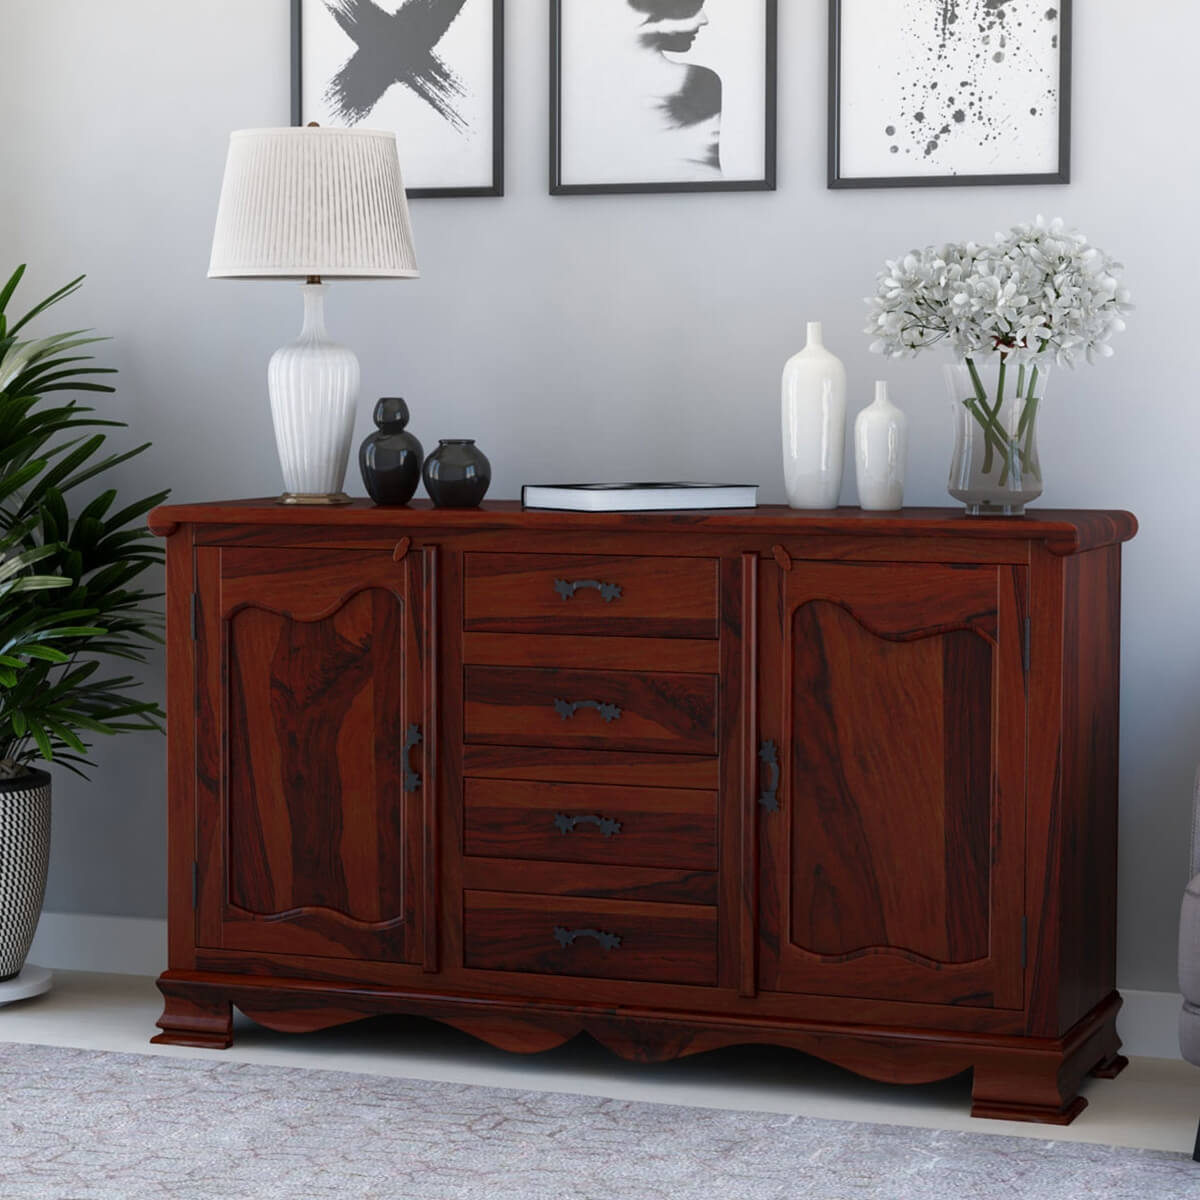 French solid rosewood 4 drawer sideboard cabinet for Buffet and sideboards for dining rooms